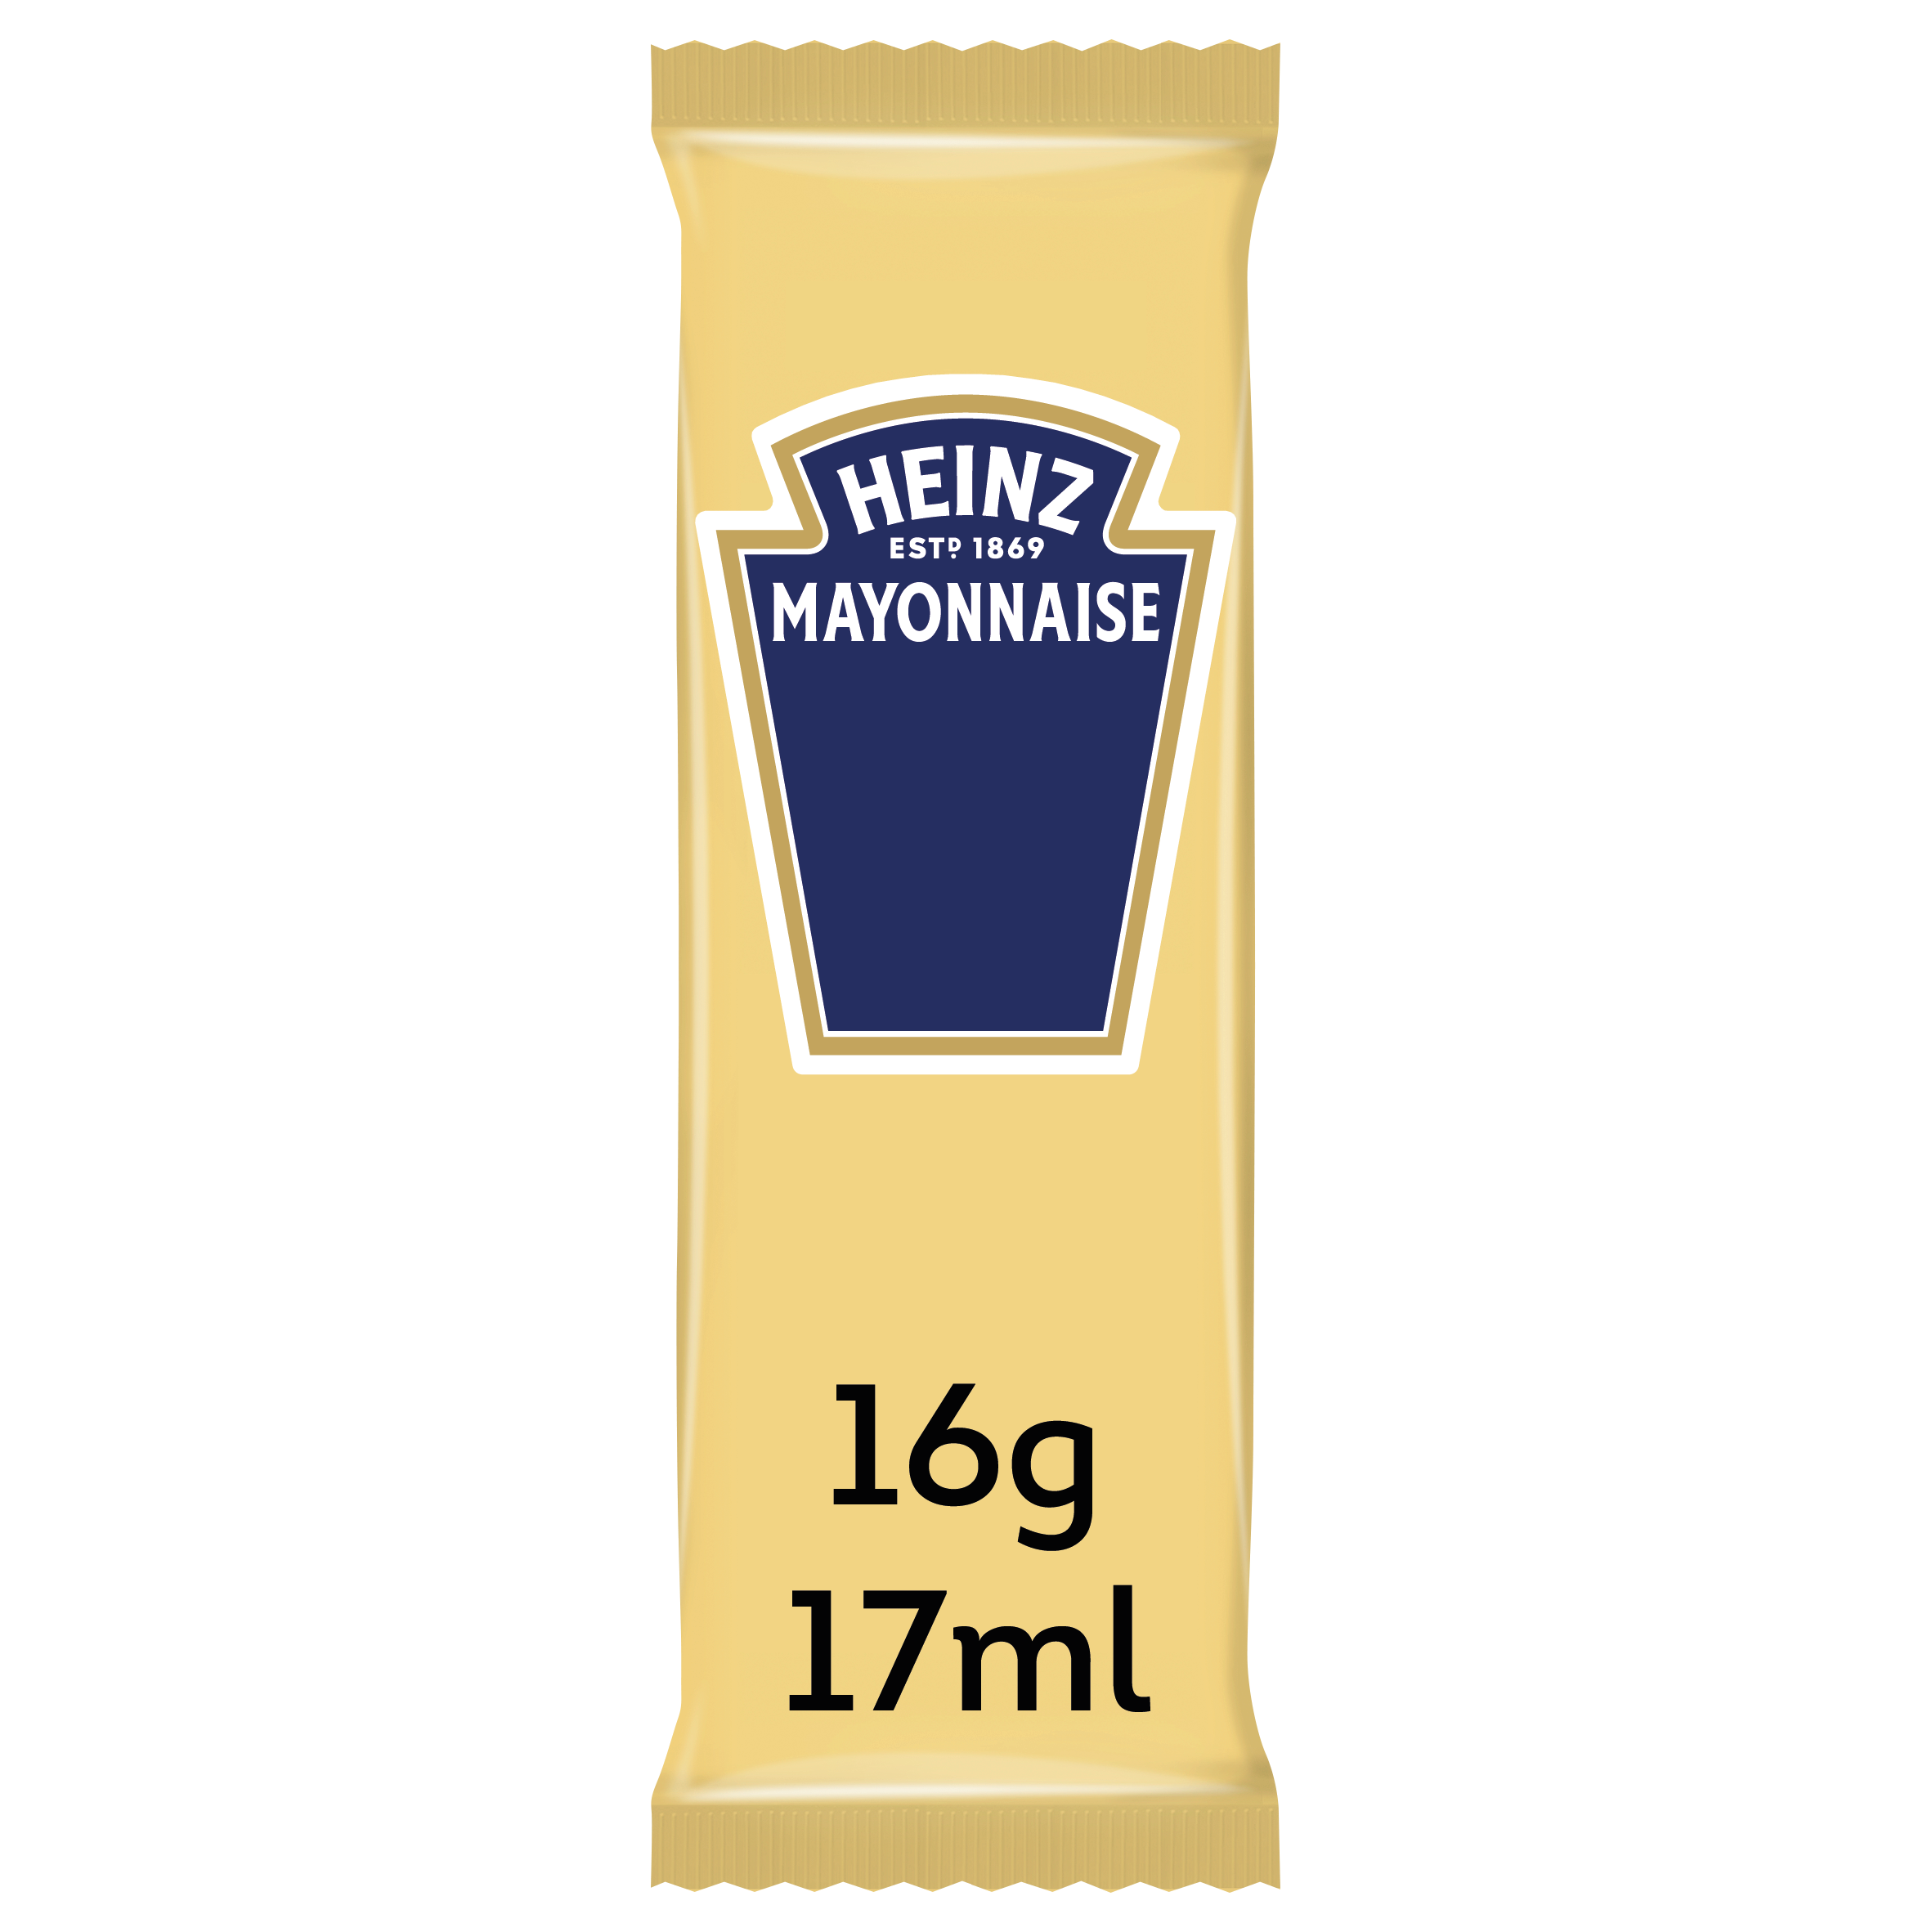 Heinz Seriously Good Mayonaise sachet 17ml